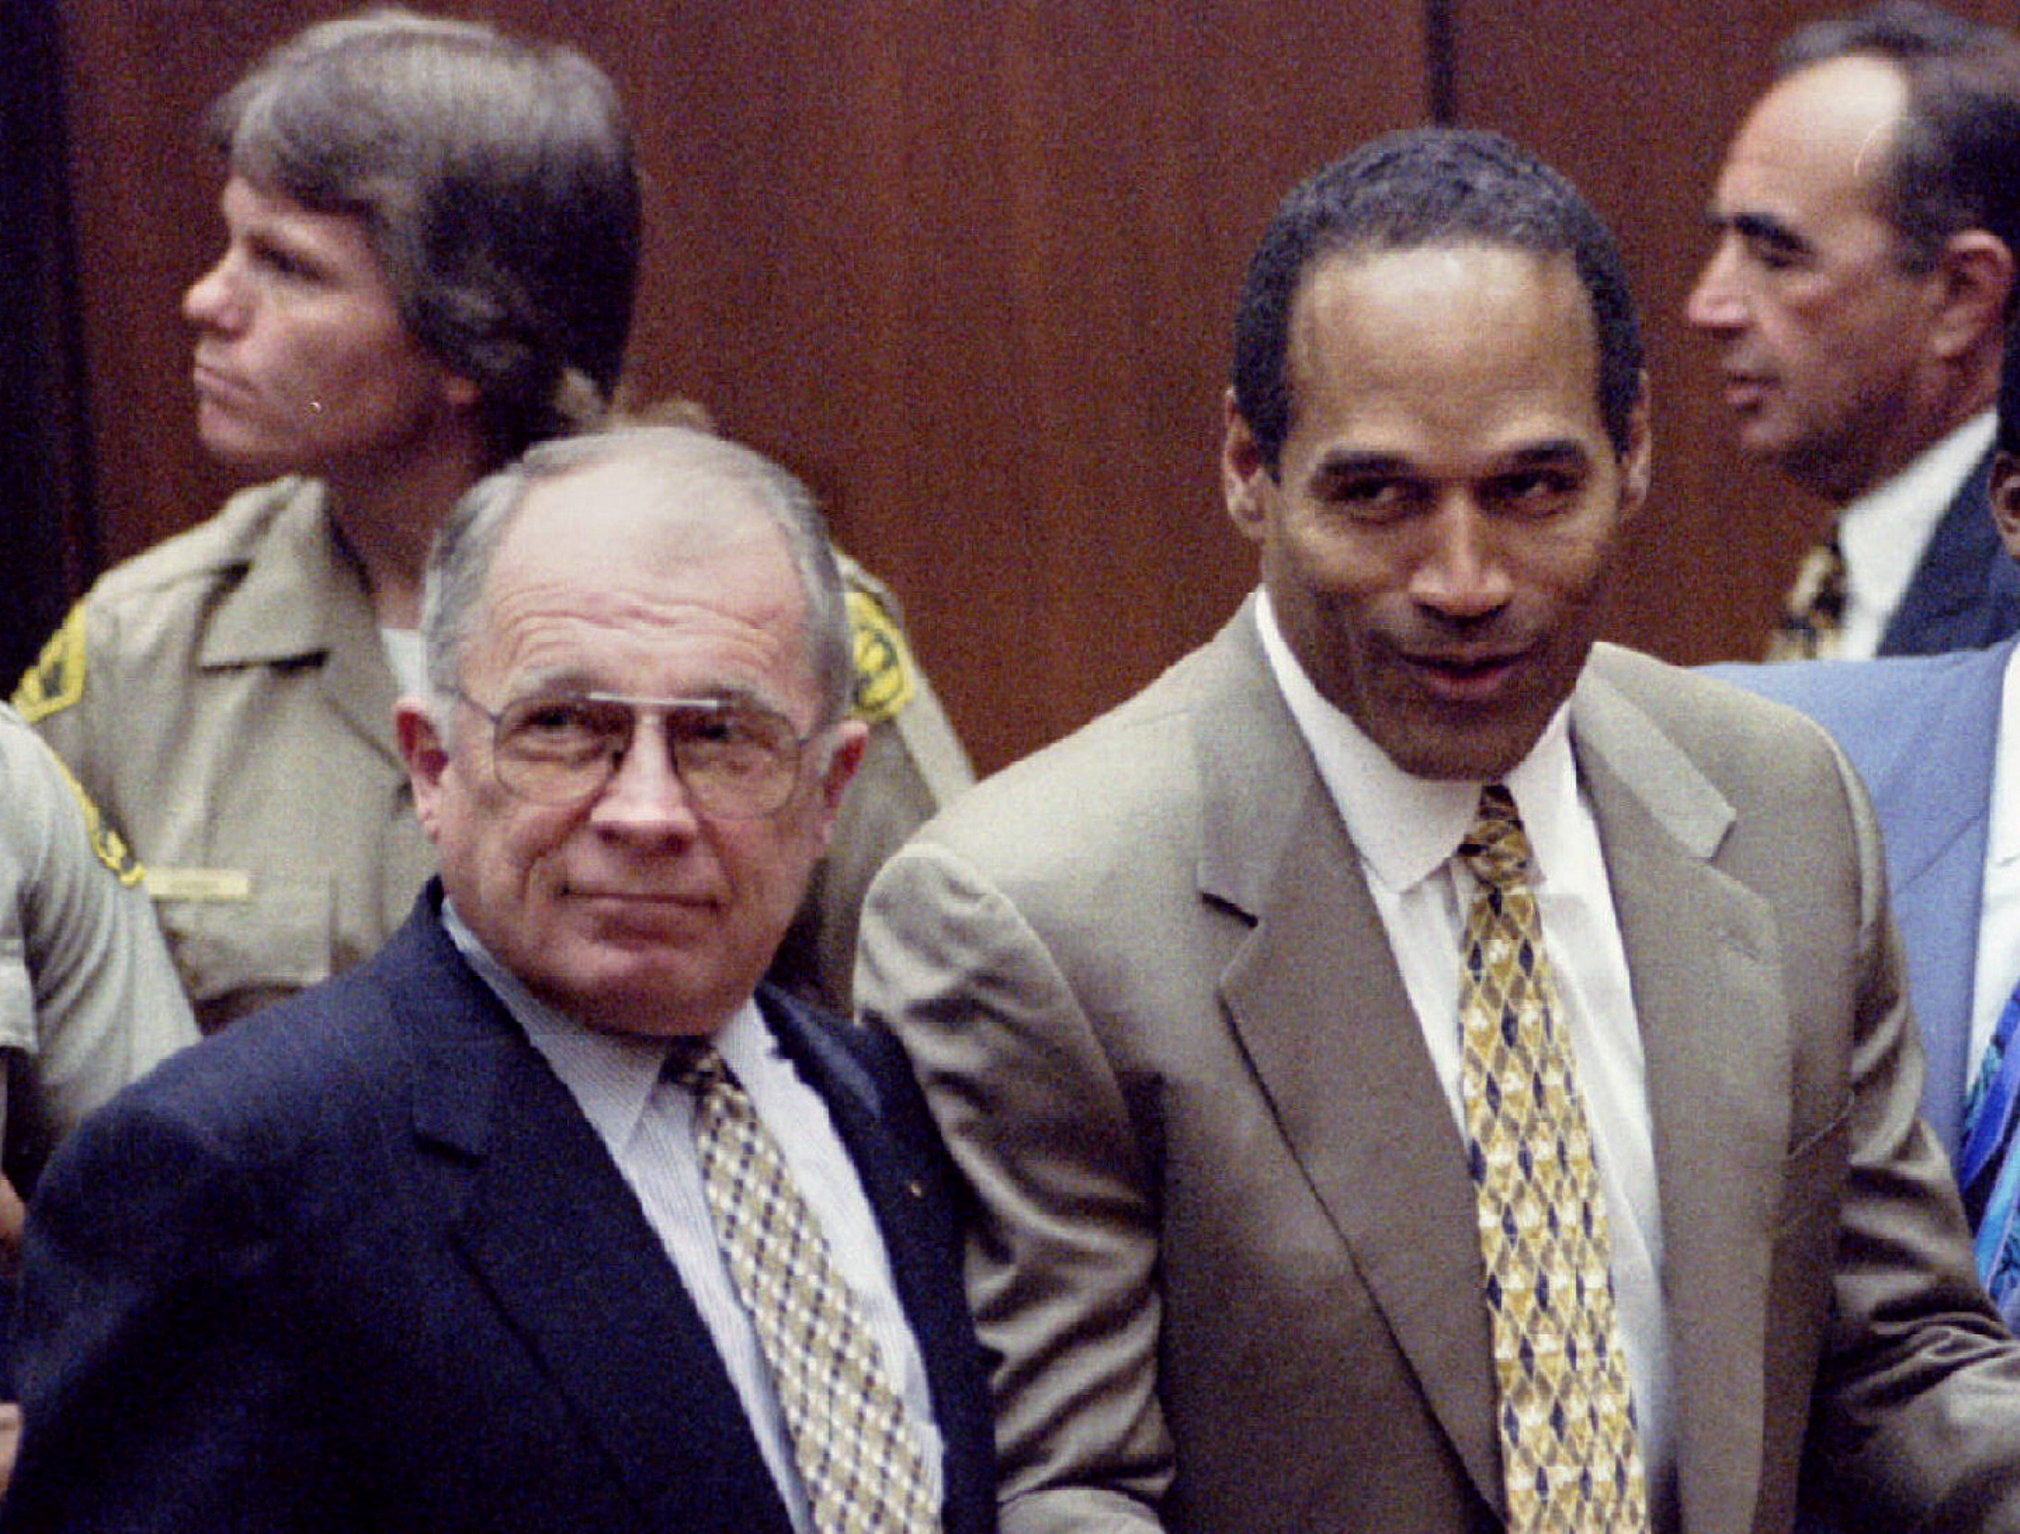 Defendant OJ Simpson reacts next to F. Lee Bailey after the court clerk announces that Simpson was found not guilty of  the murders of Nicole Simpson and Ronald Goldman, October 3, 1995. Pool via REUTERS/File Photo